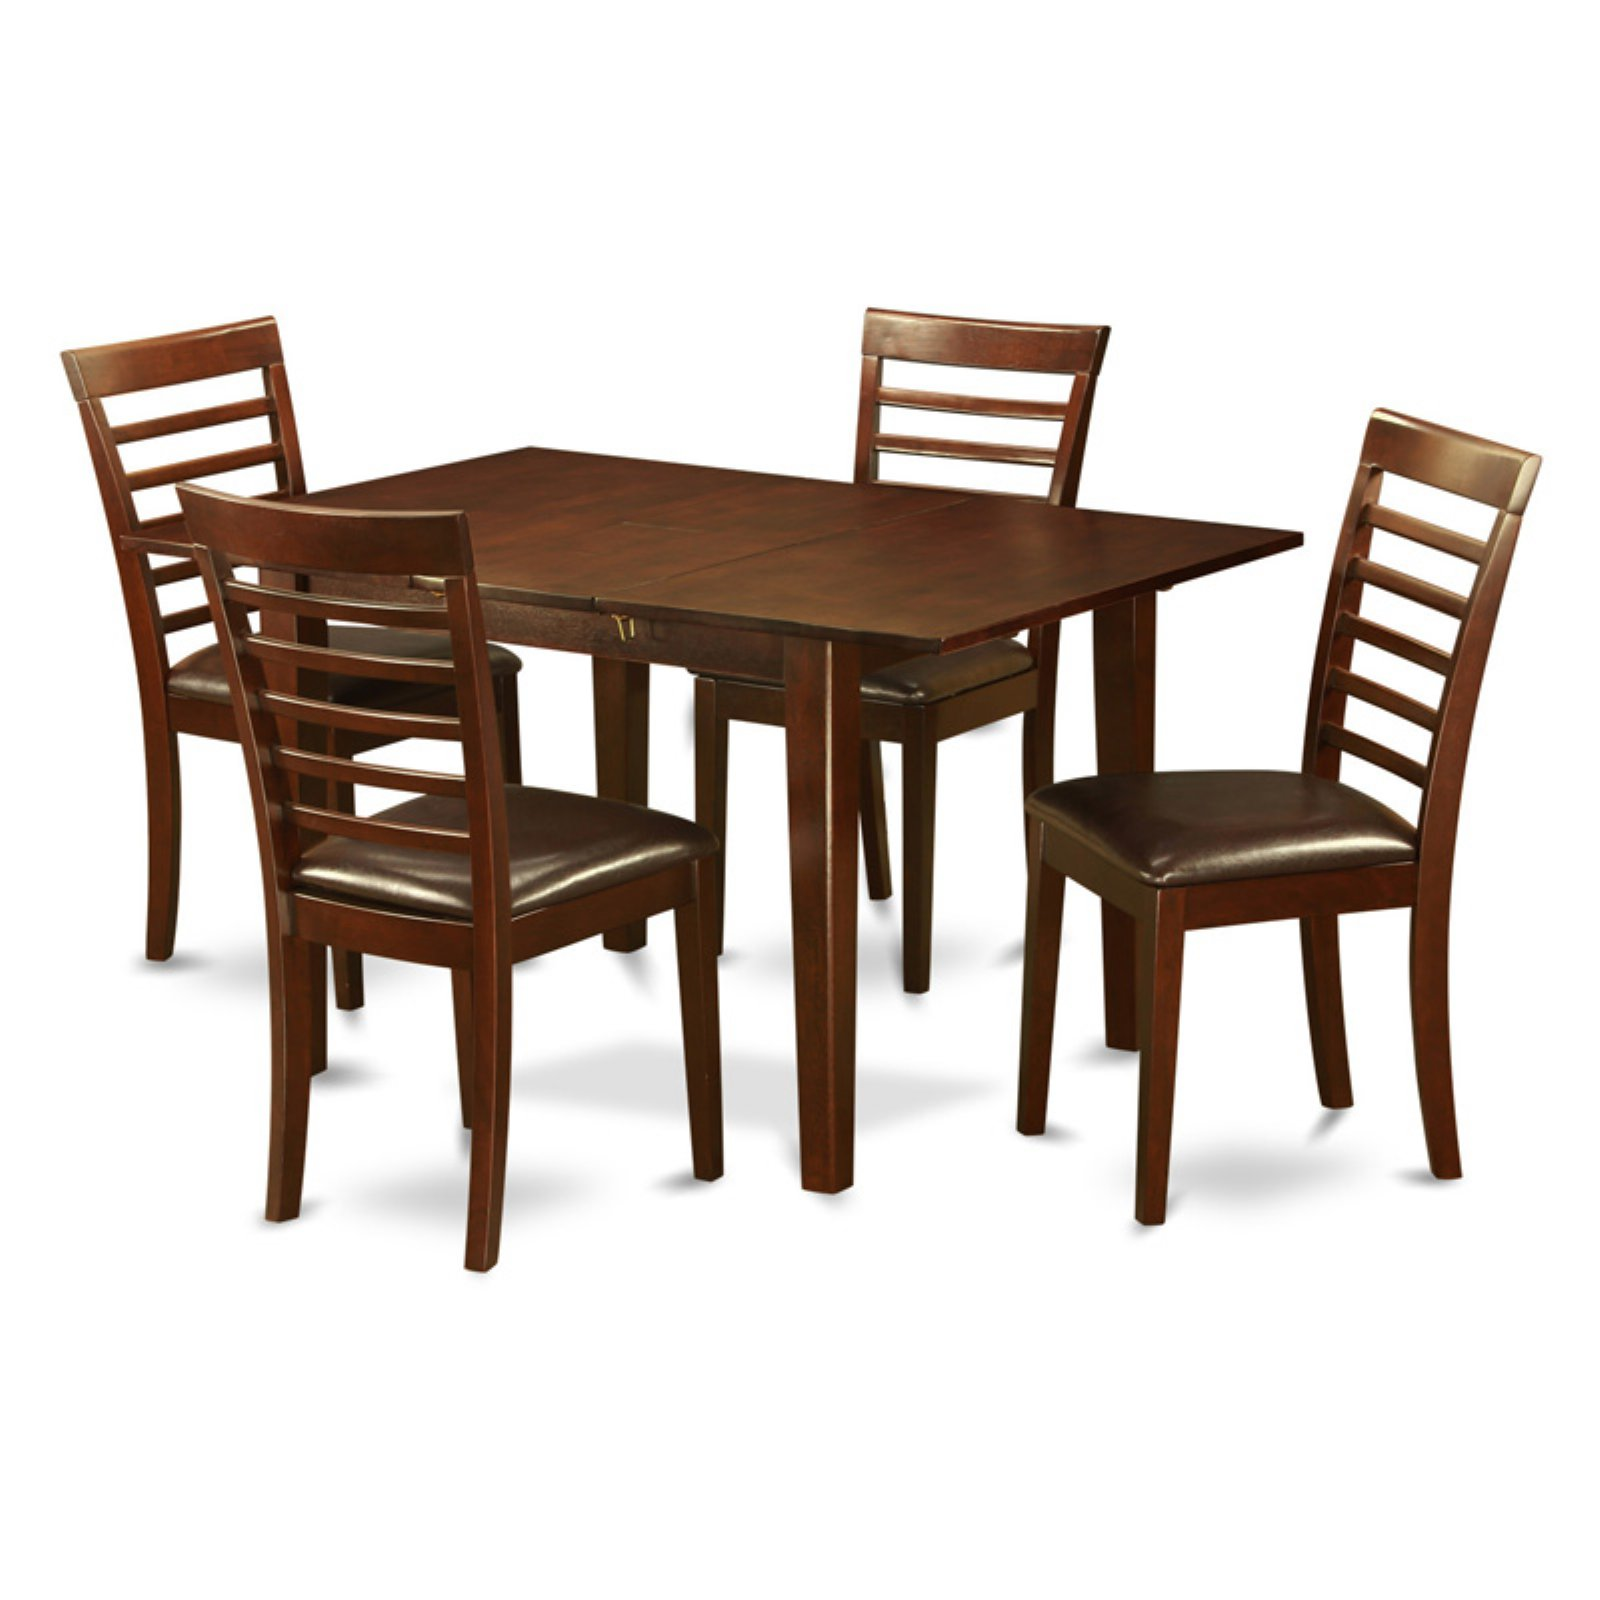 East West Furniture Picasso 5 Piece Straight Ladderback Dining Table Set